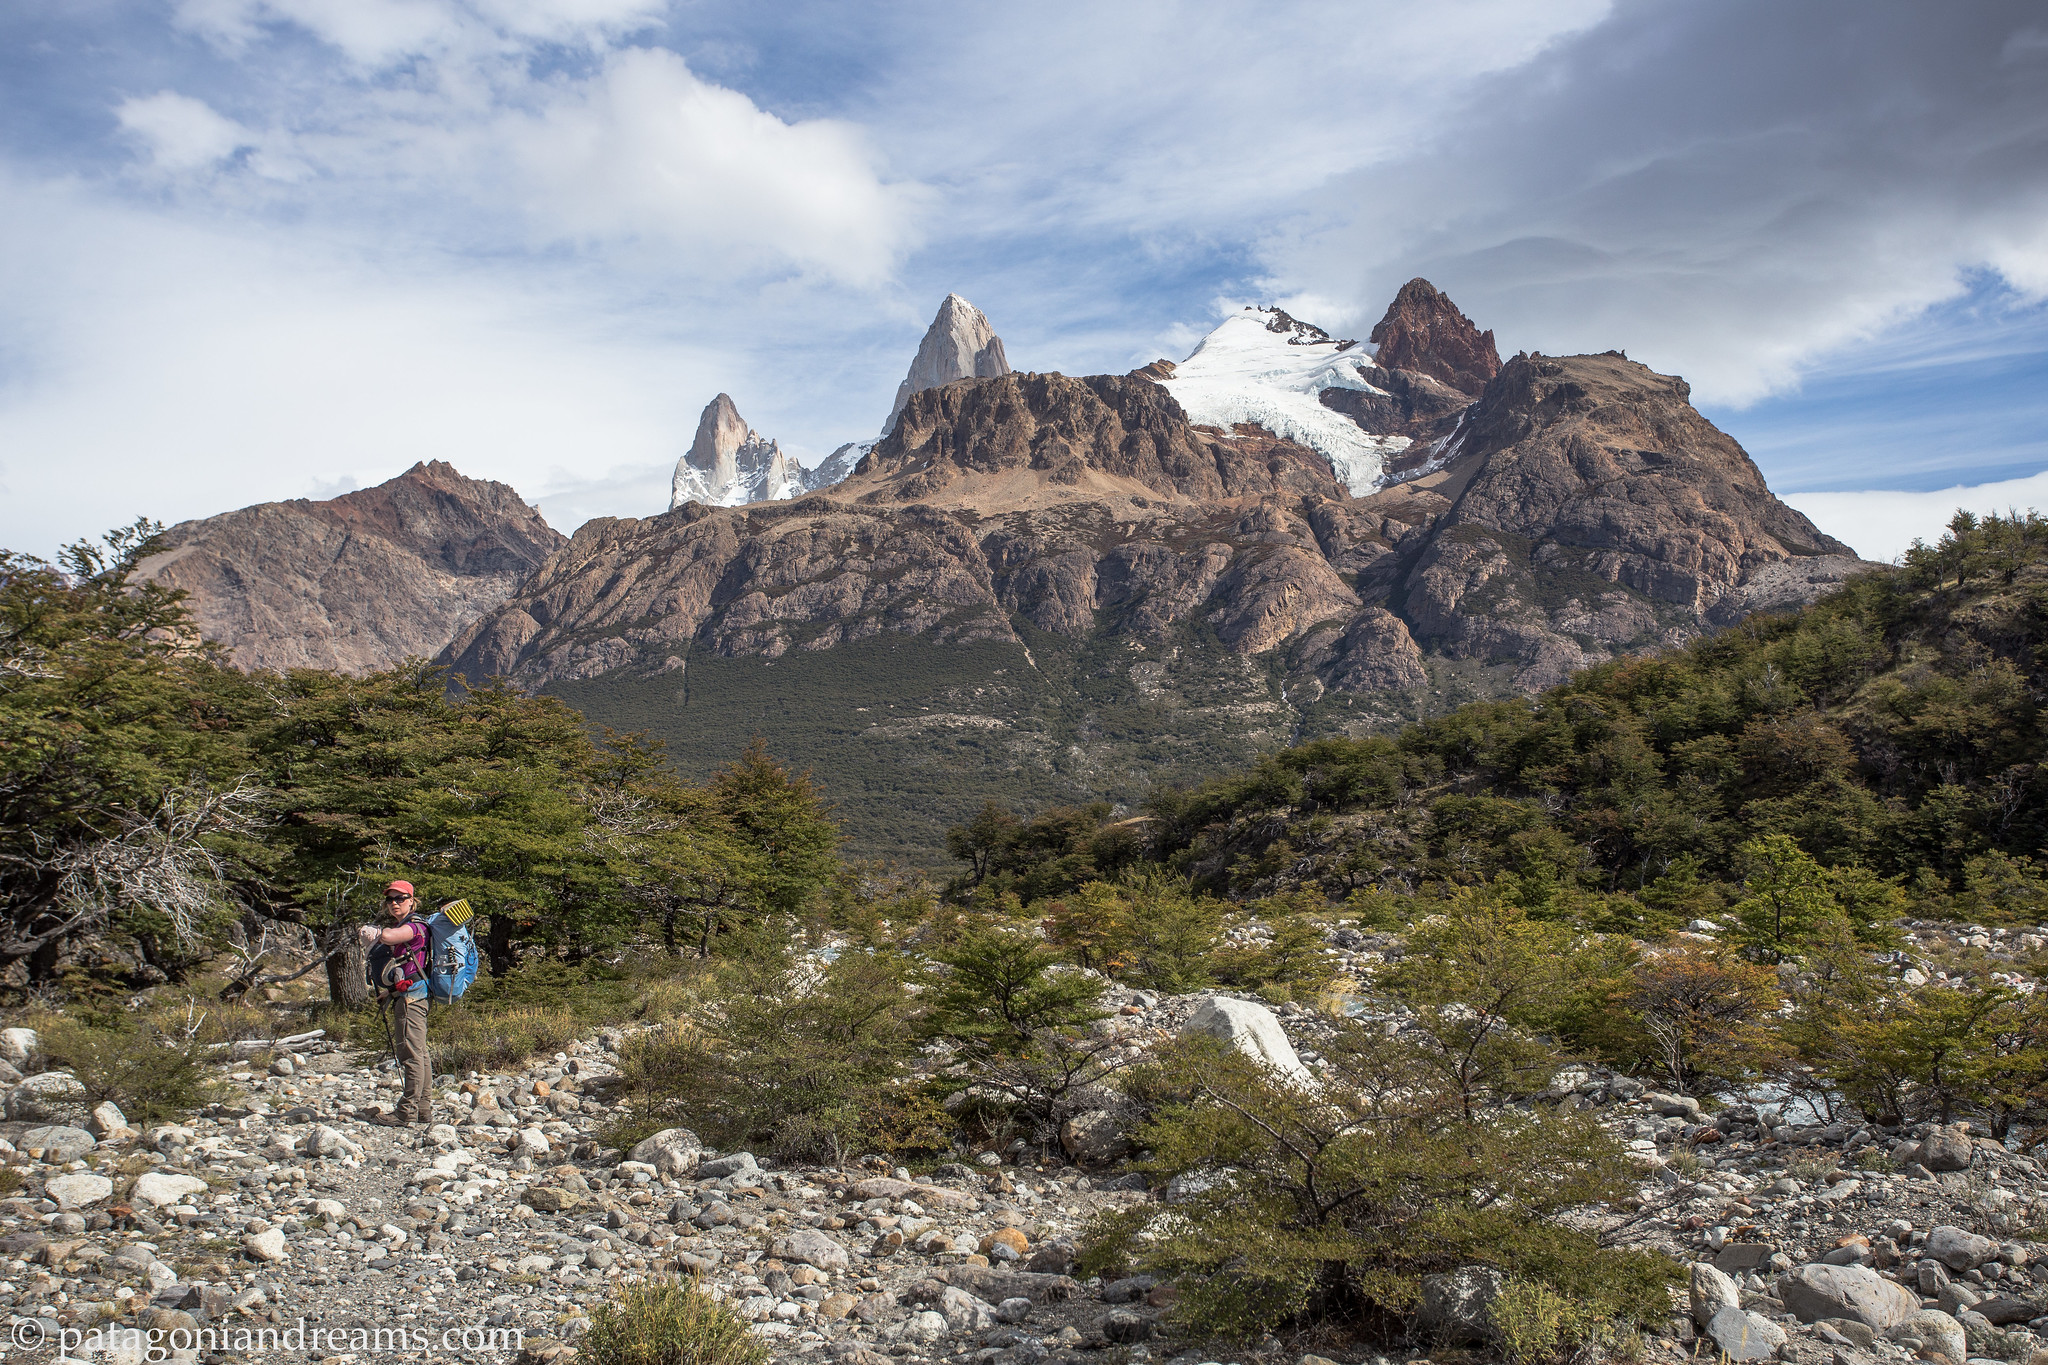 Good morning, this morning, day 3 of the trek, NP Los Glaciares, Patagonia, Argentina.